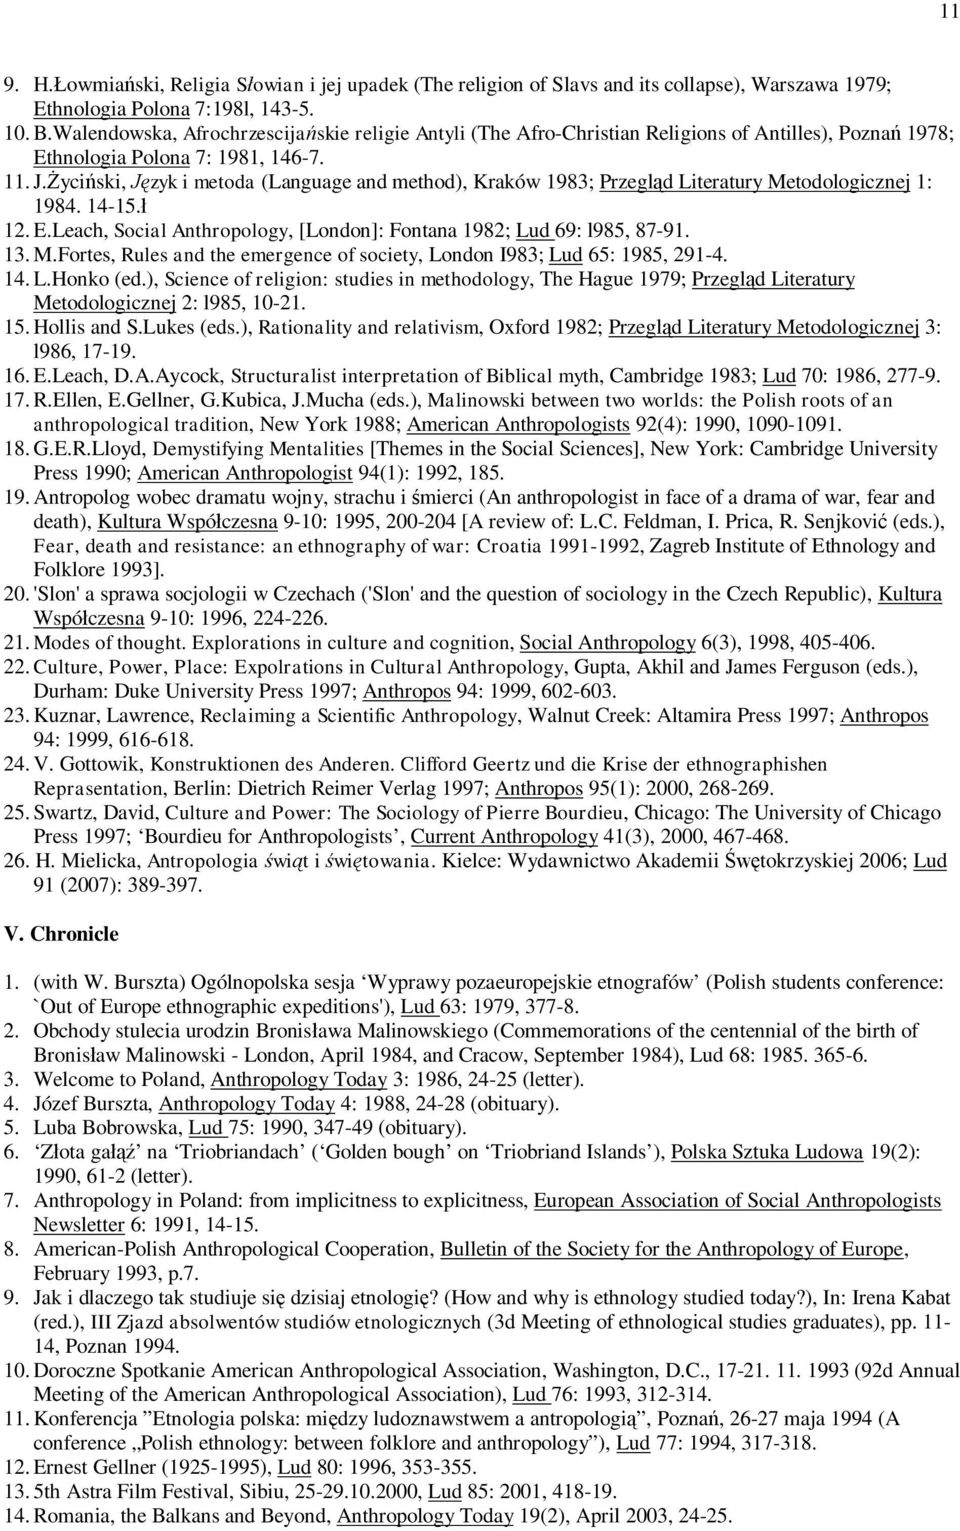 yci ski, zyk i metoda (Language and method), Kraków 1983; Przegl d Literatury Metodologicznej 1: 1984. 14-15. 12. E.Leach, Social Anthropology, [London]: Fontana 1982; Lud 69: l985, 87-91. 13. M.Fortes, Rules and the emergence of society, London I983; Lud 65: 1985, 291-4.